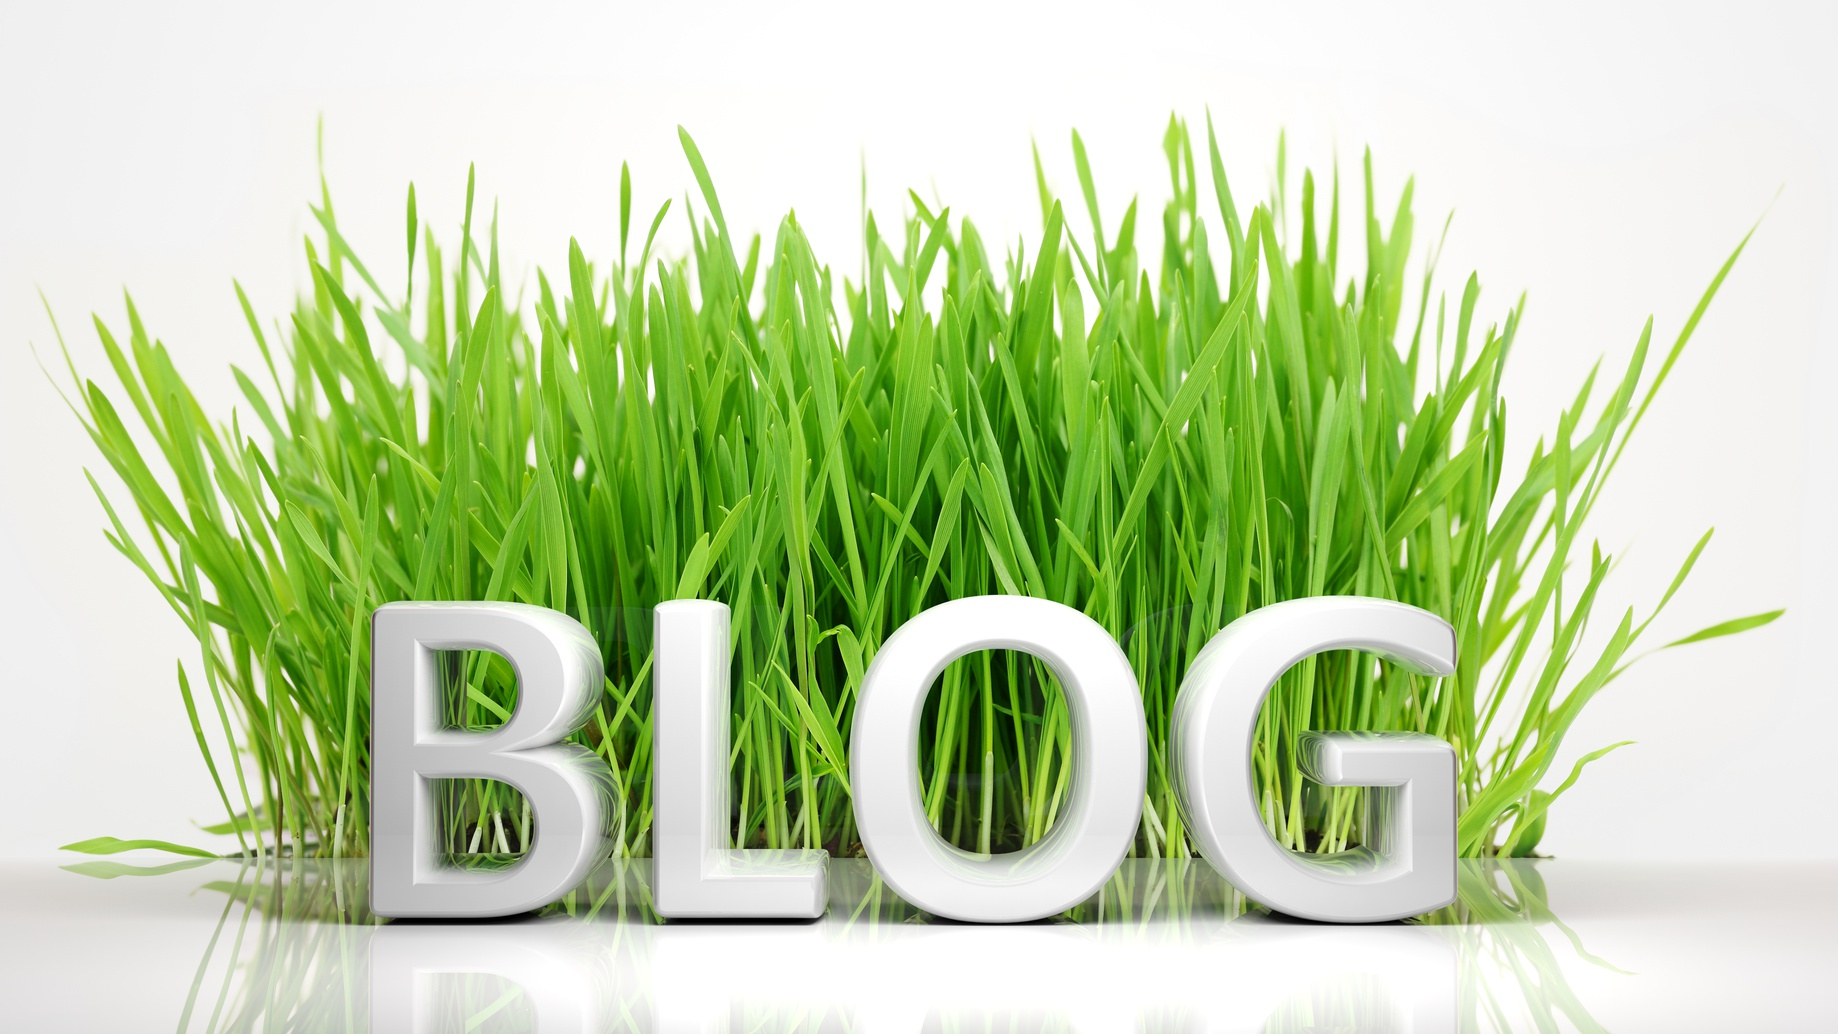 content syndication guest blogging tips strategies